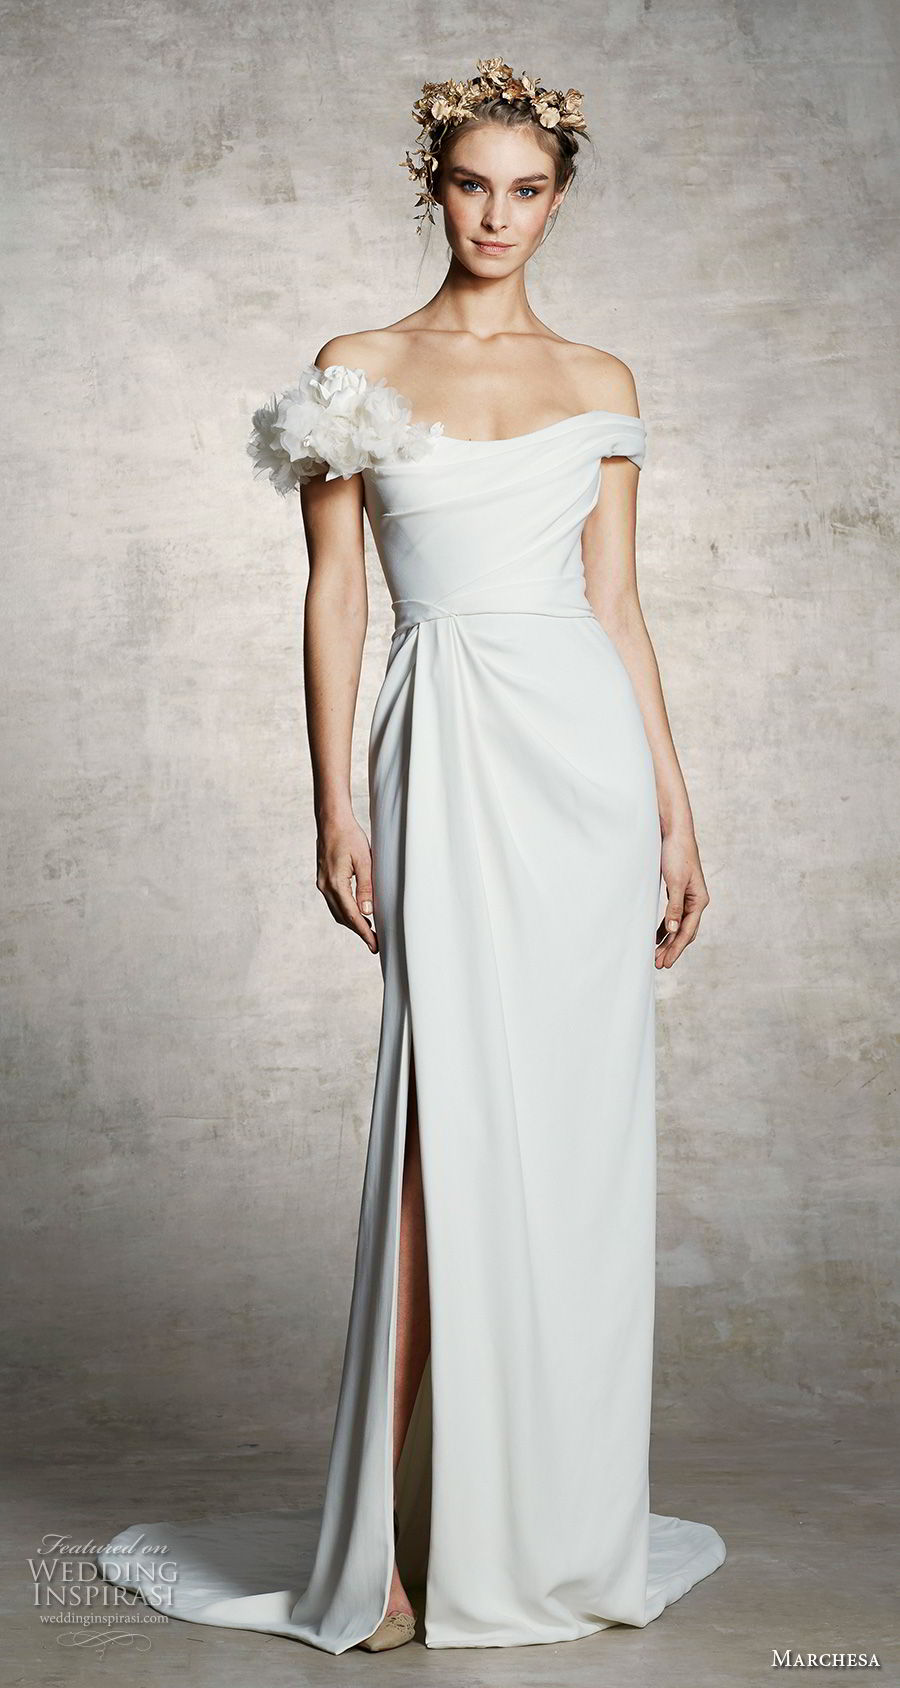 marchesa spring 2019 bridal off the shoulder simple minimalist slit skirt elegant grecian sheath wedding dress sweep train (14) mv